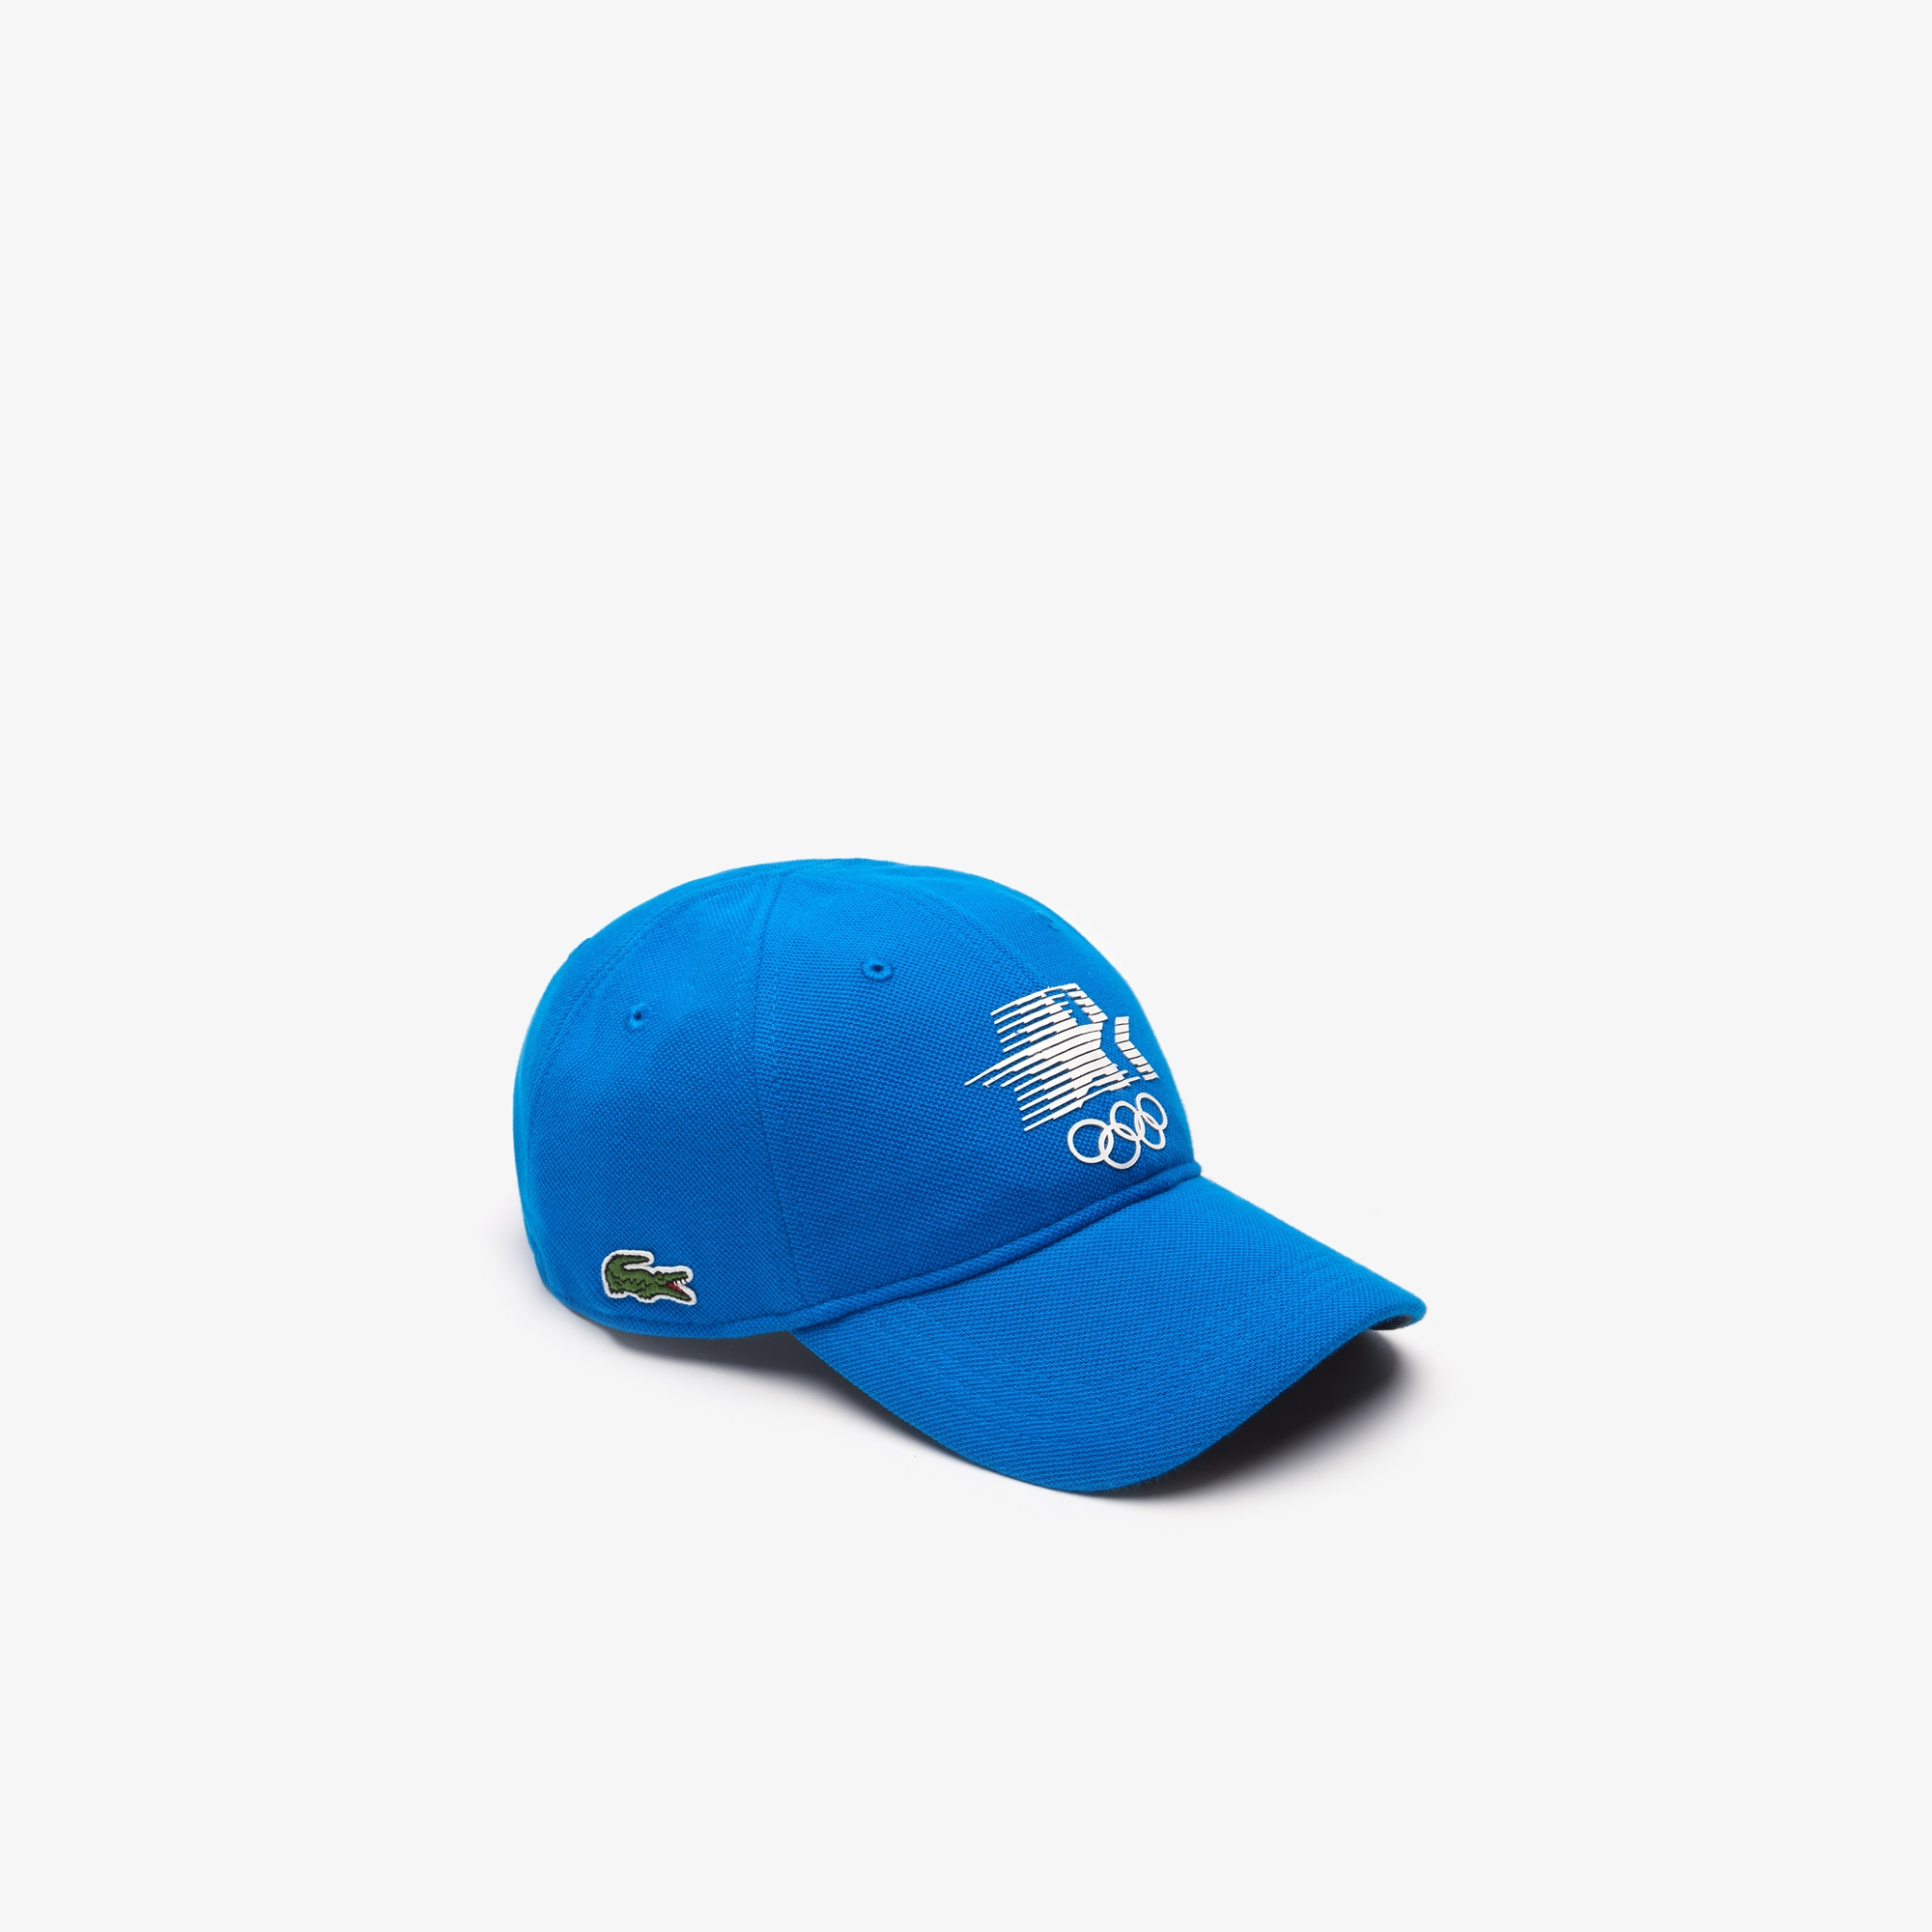 Casquette Olympic Heritage Collection by Lacoste en coton avec logo